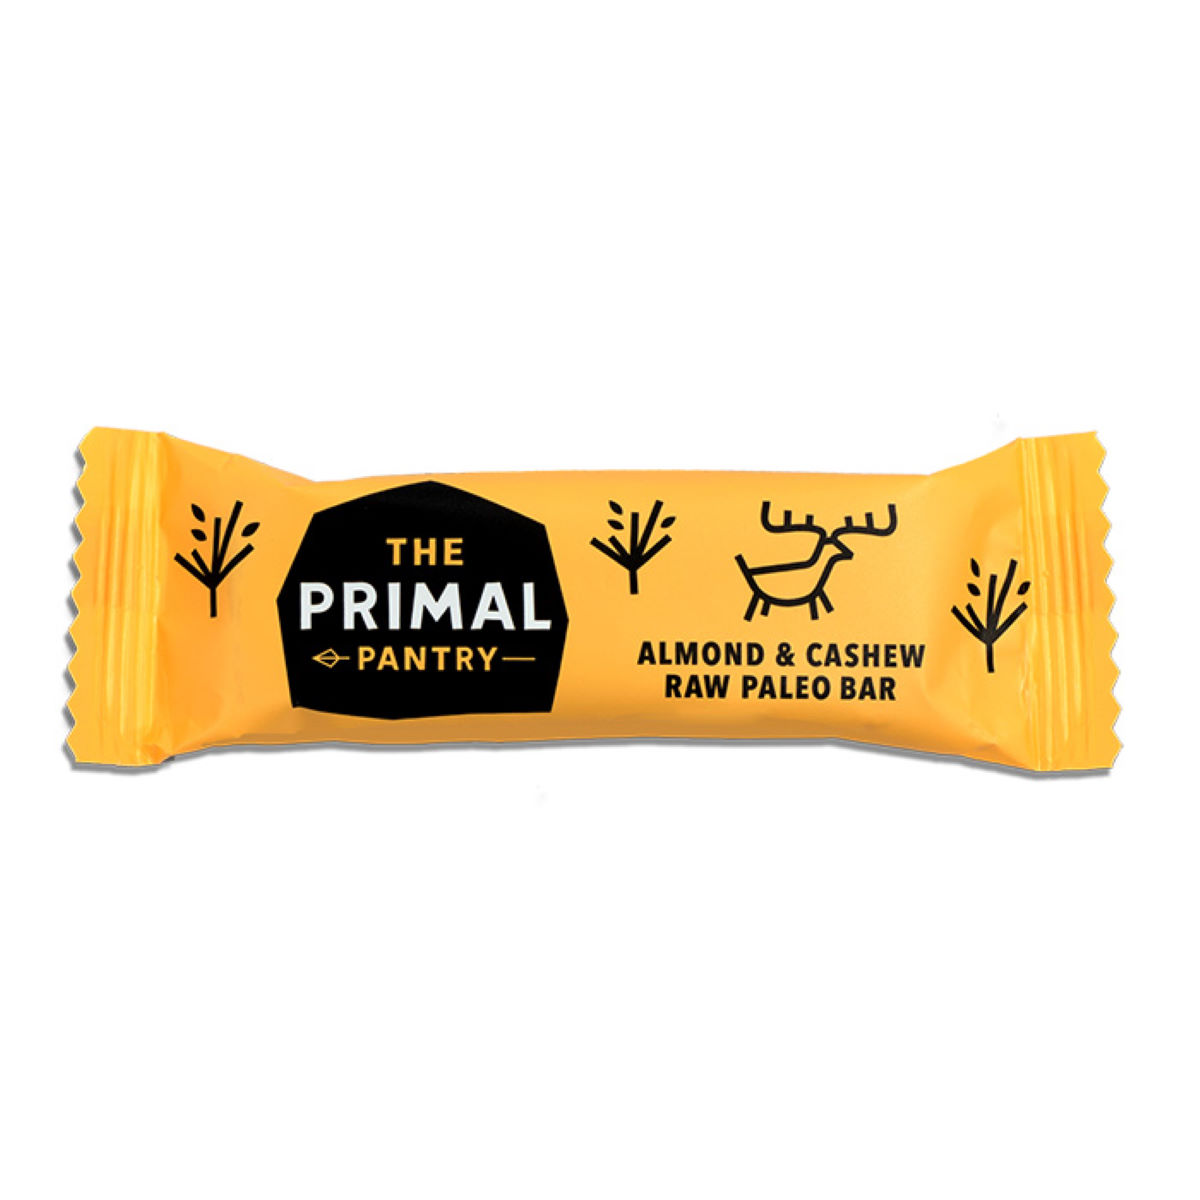 Image of Barres The Primal Pantry Raw Paleo - 41-60g Almond | Barres